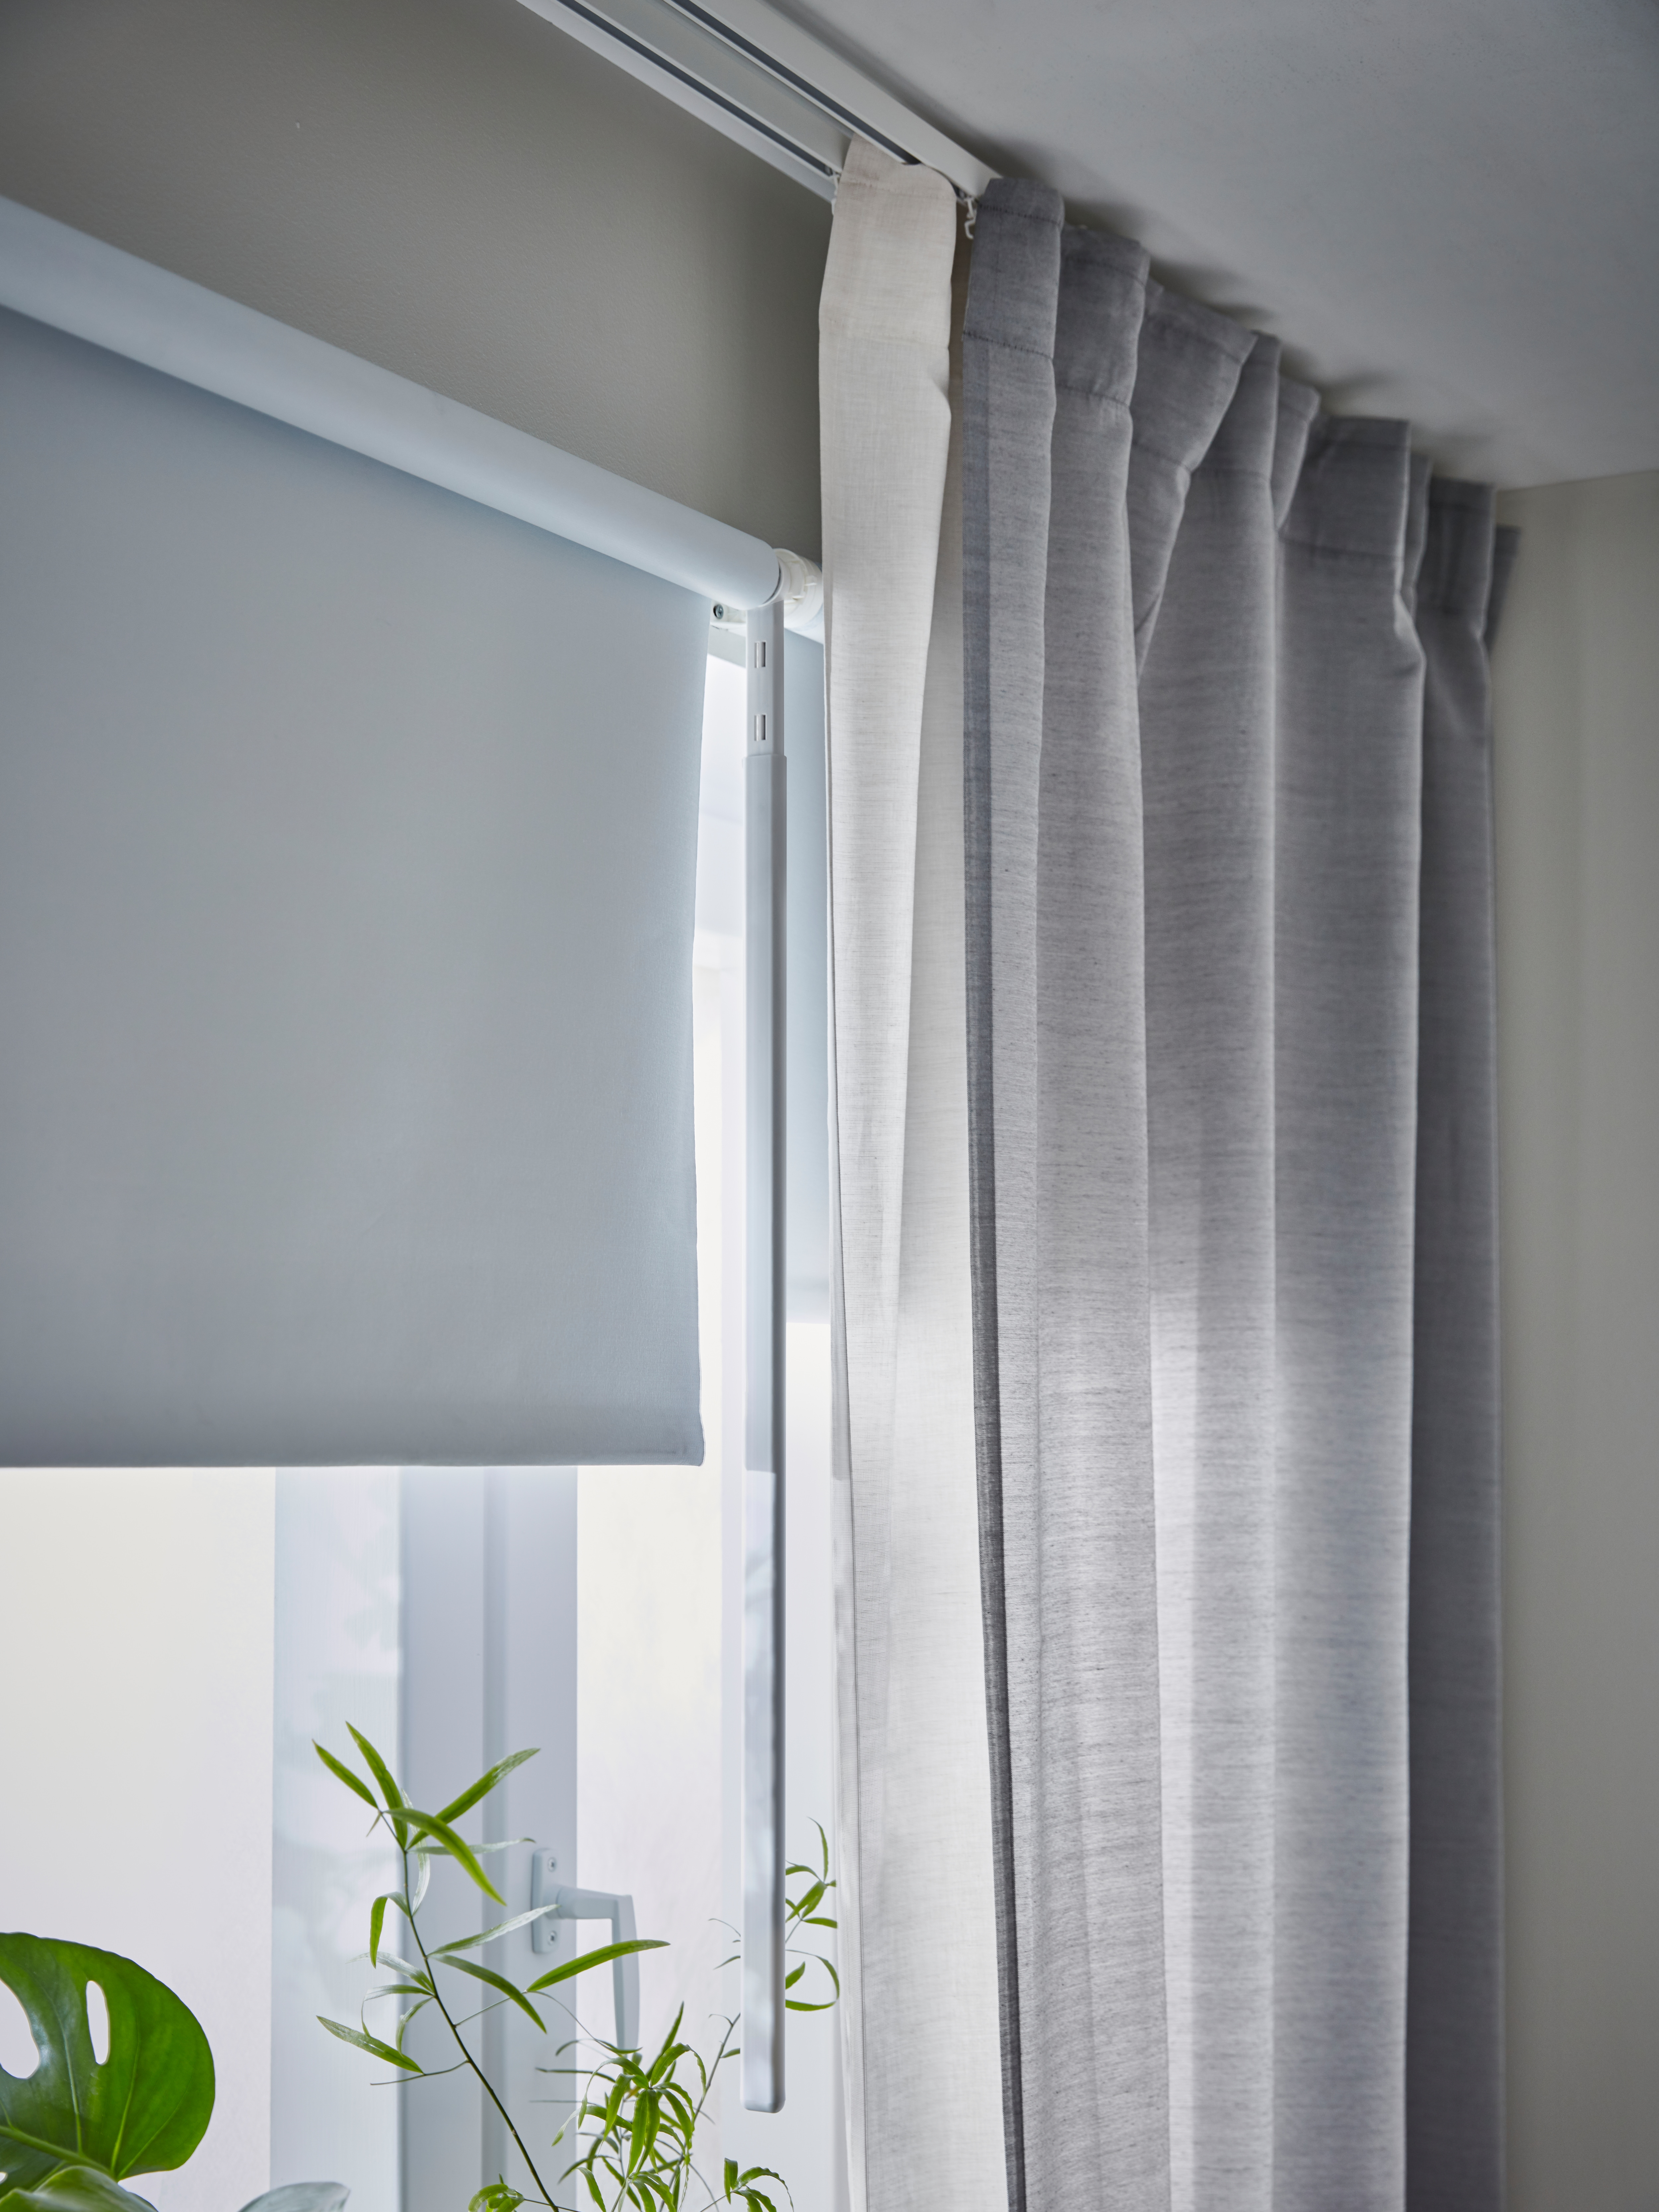 Bedroom with light grey wall, roller blind with block-out coating mounted on window frame, grey curtains, green house plants.